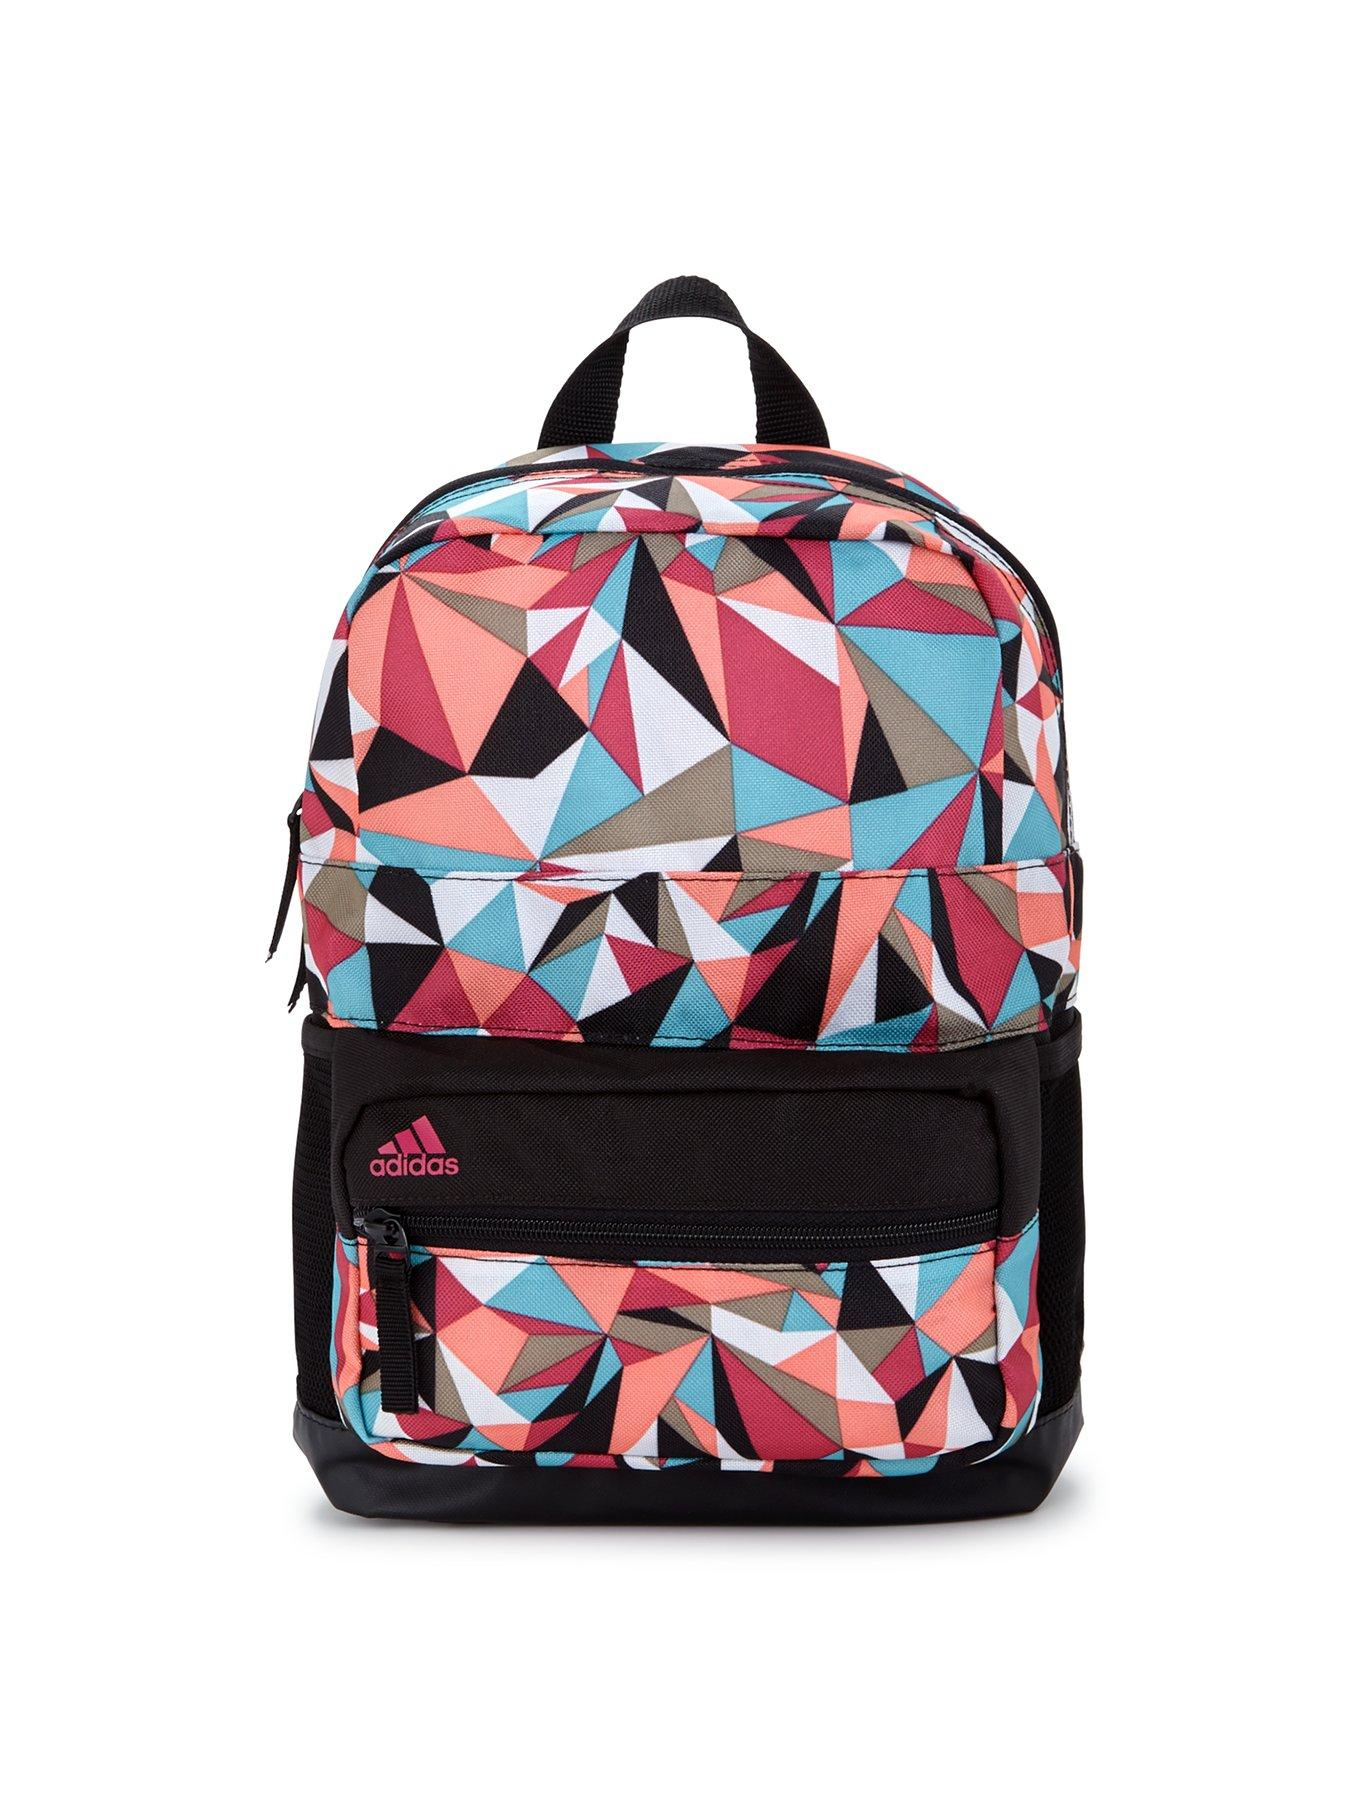 57b31a1eb7 little adidas bags on sale > OFF52% Discounted